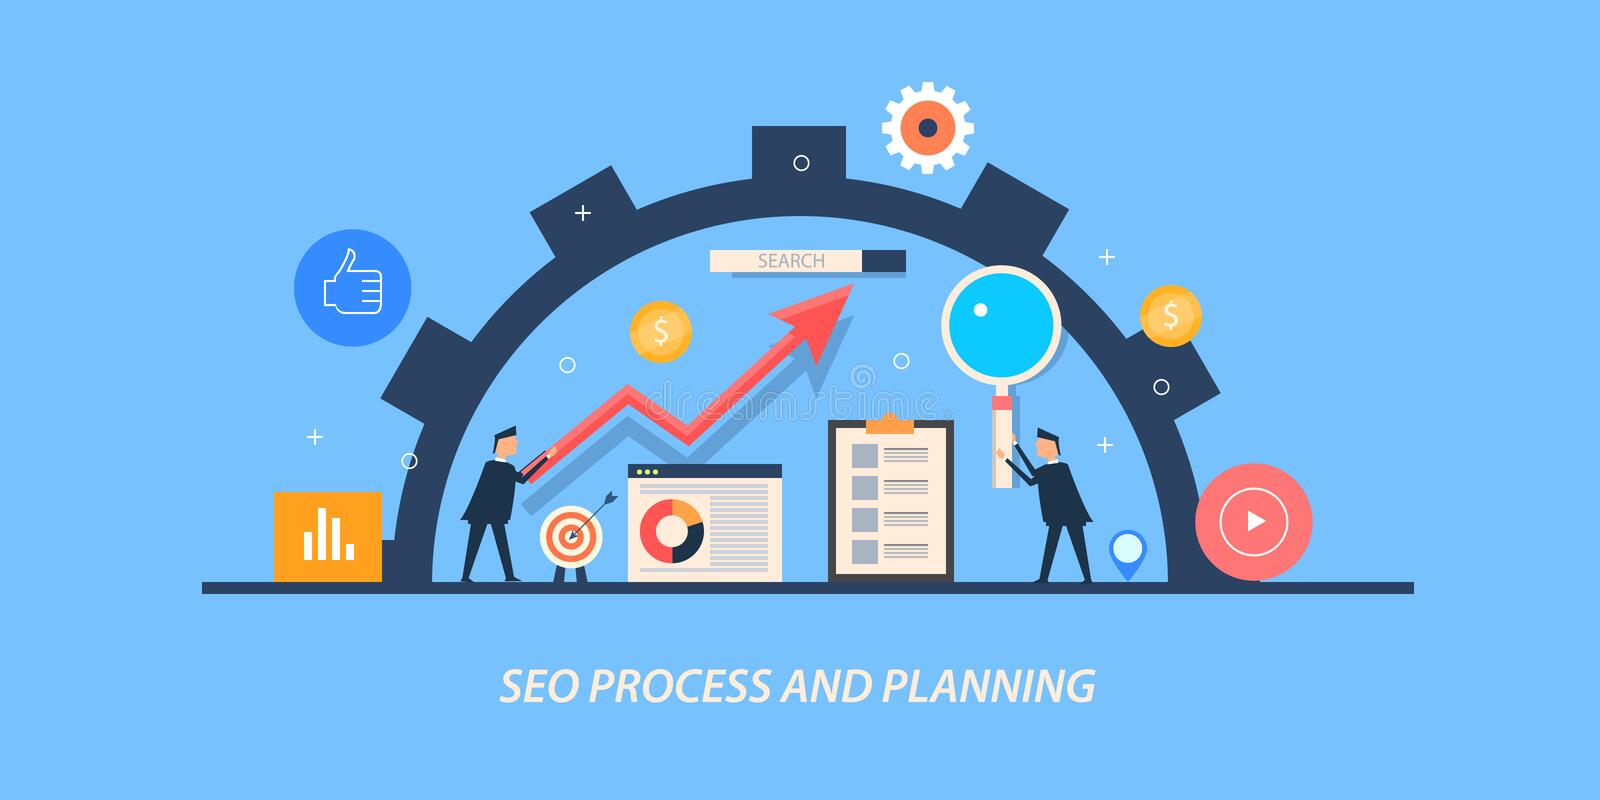 Flat design concept of search engine optimization, businessmen planning an ongoing seo process. Modern concept of search engine optimization and seo marketing vector illustration